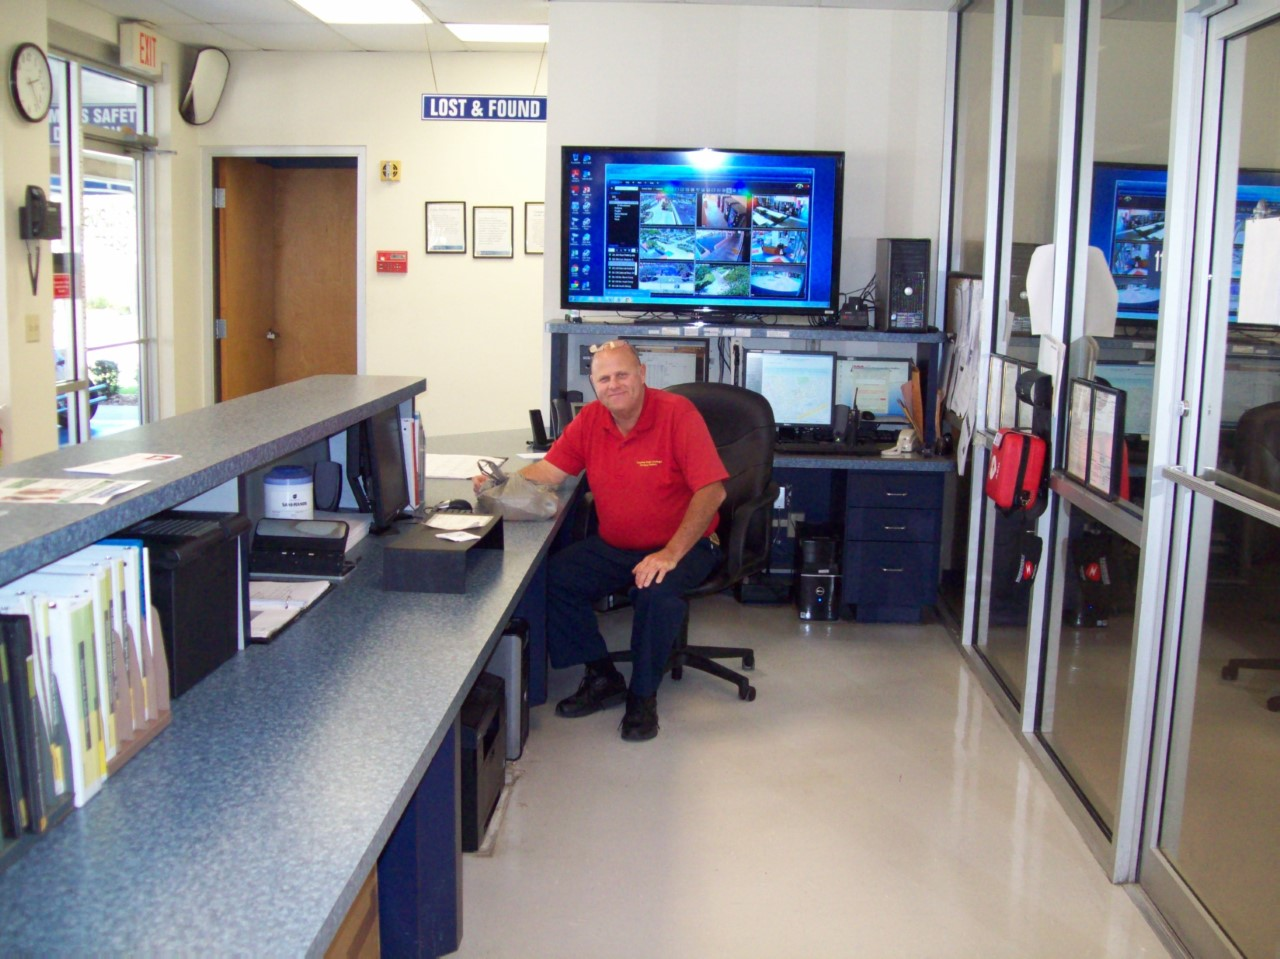 Picture of Brian Bonner that I took at work, (Campus Safety).<br /> Respectfully,<br /> Charles Hinton